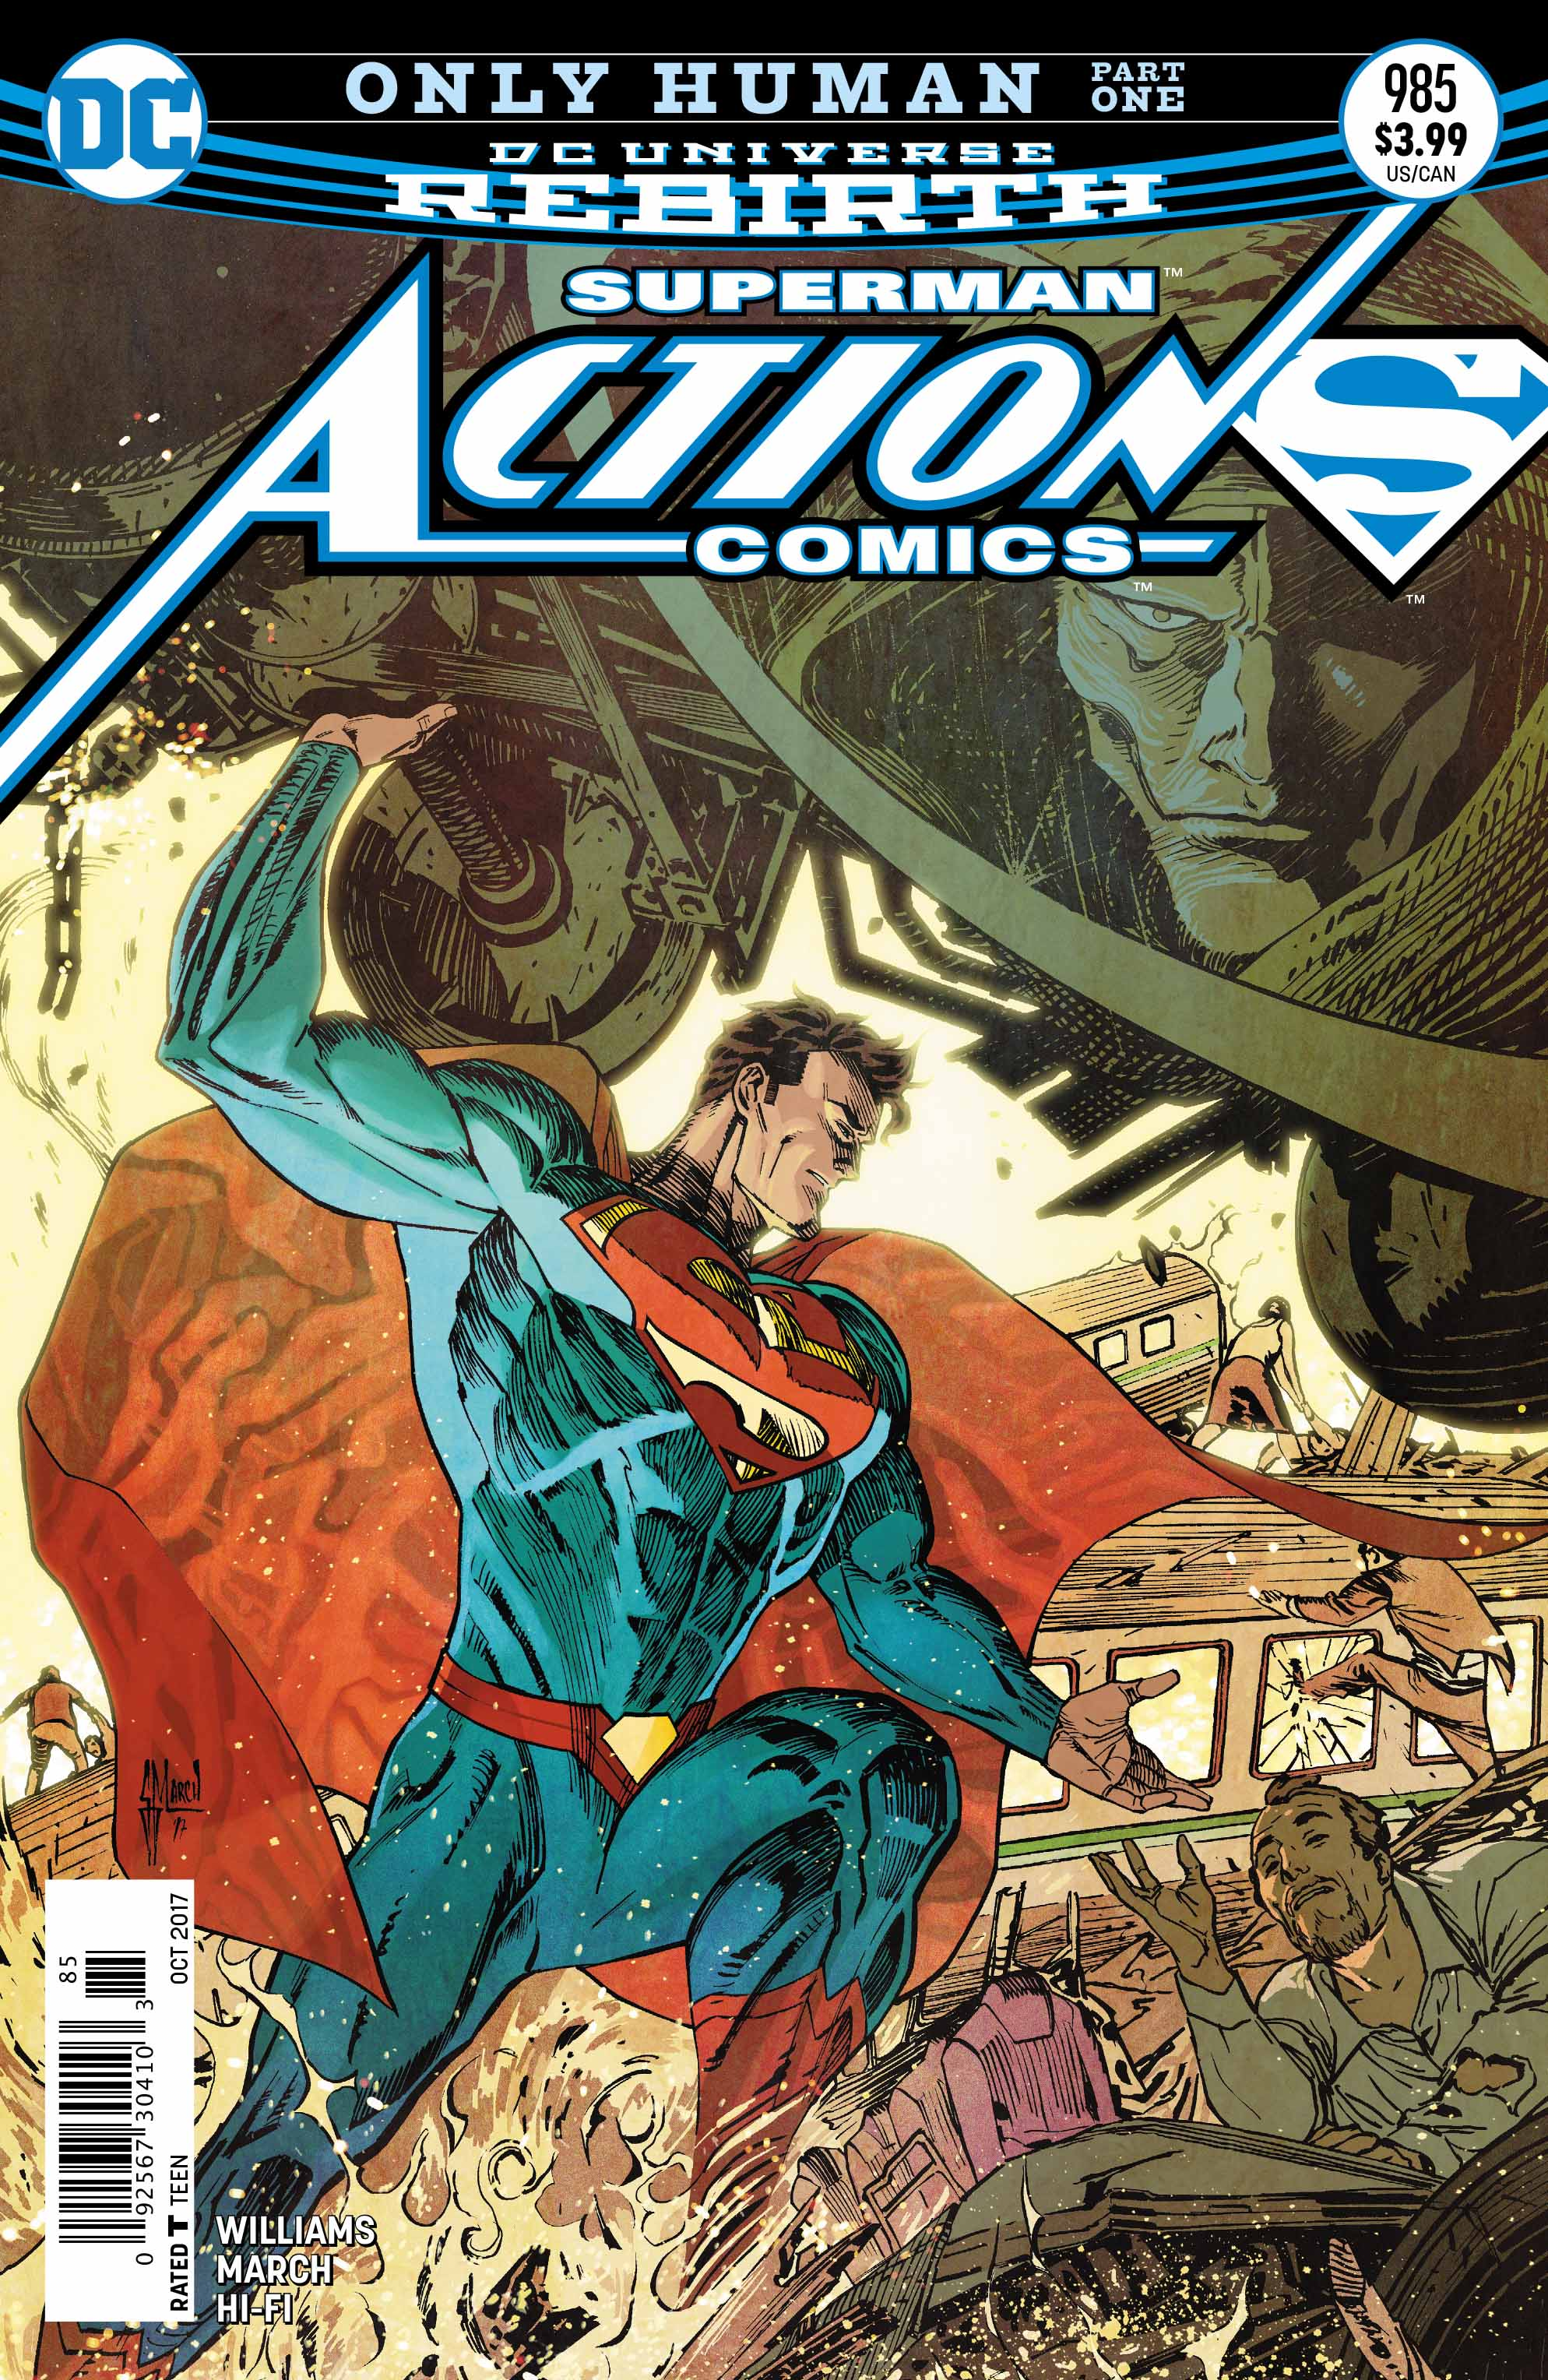 'Action Comics' #958 reviewed in this week's episode of CASUAL WEDNESDAYS